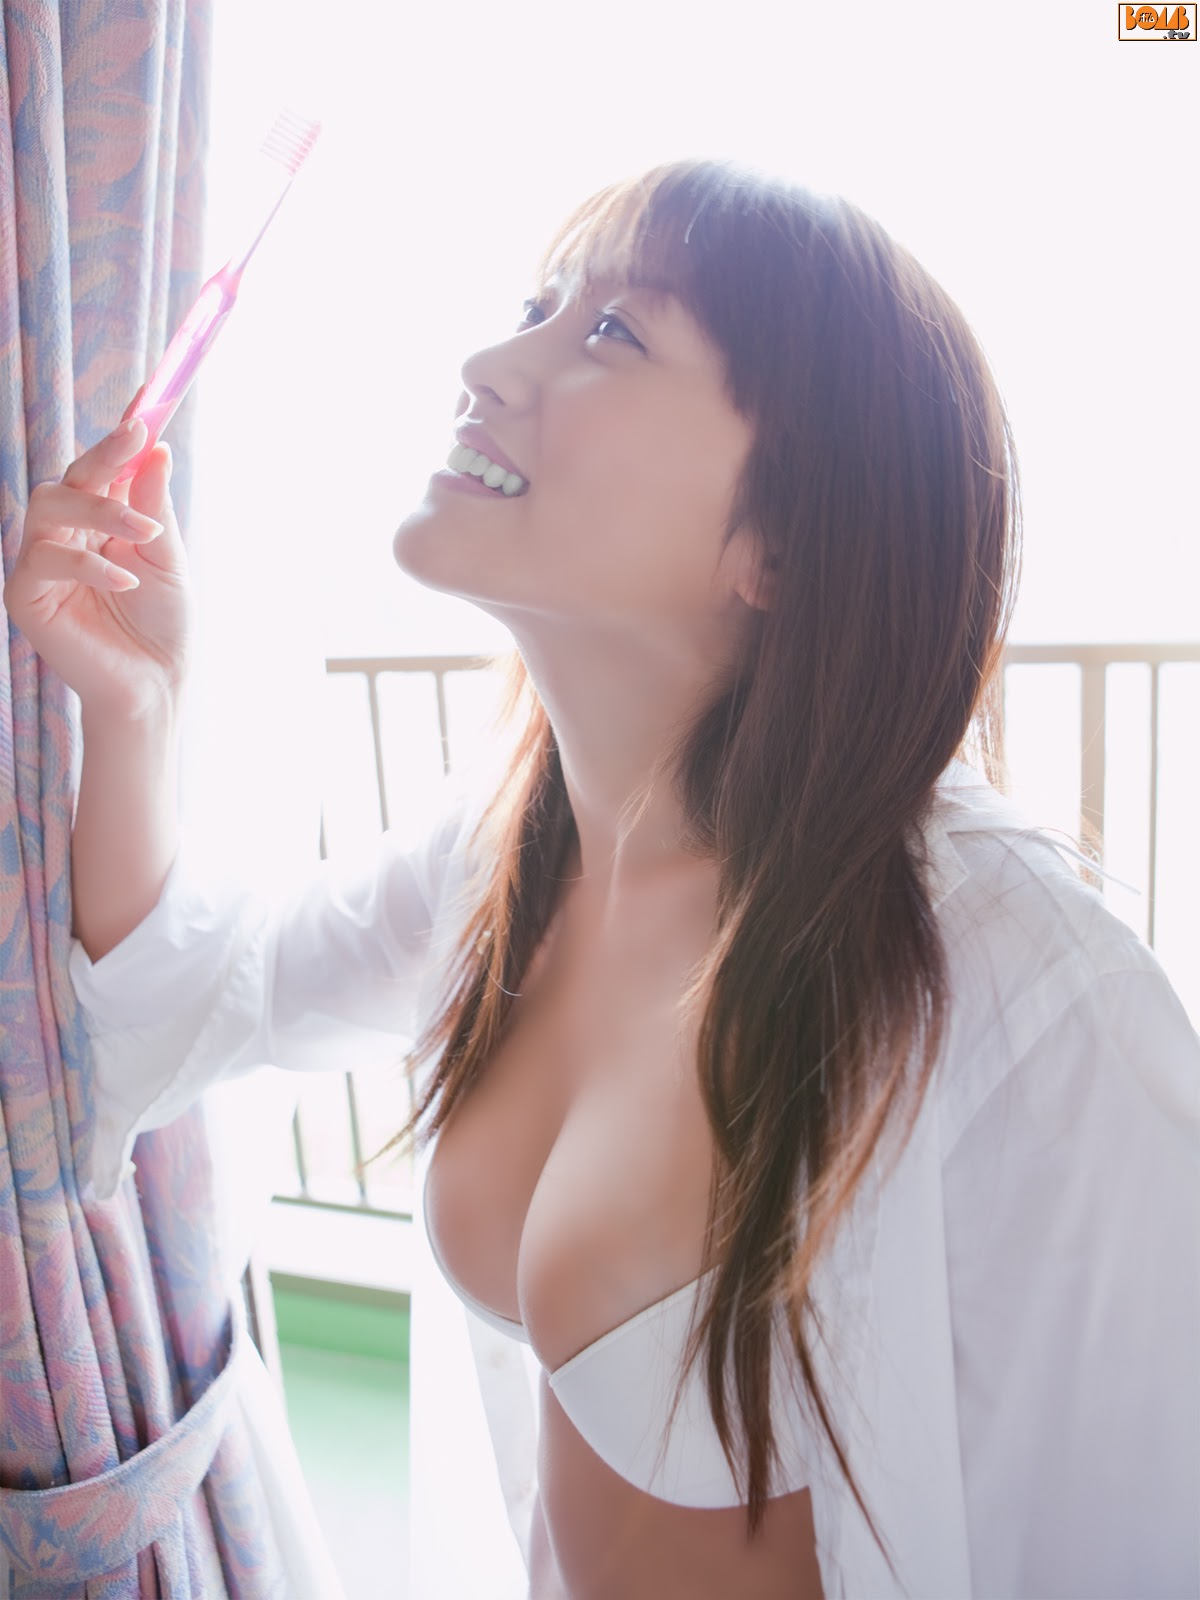 All kinds of redweathered skin sweaty skin smiles in the morning light Mikie Hara007